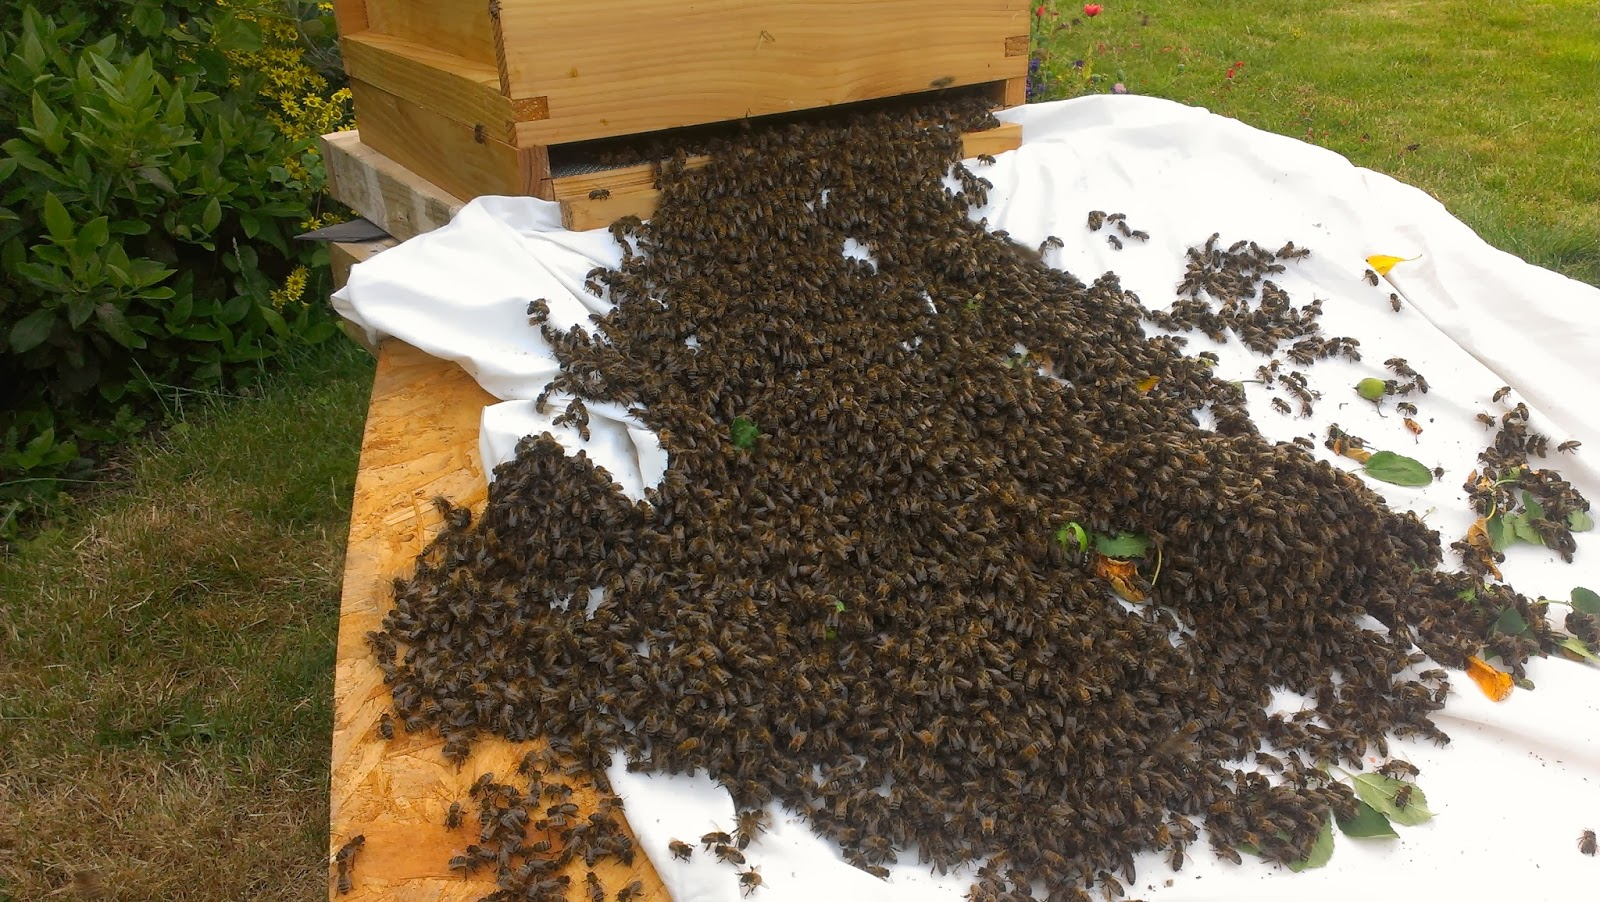 What to do with a swarm of bees.